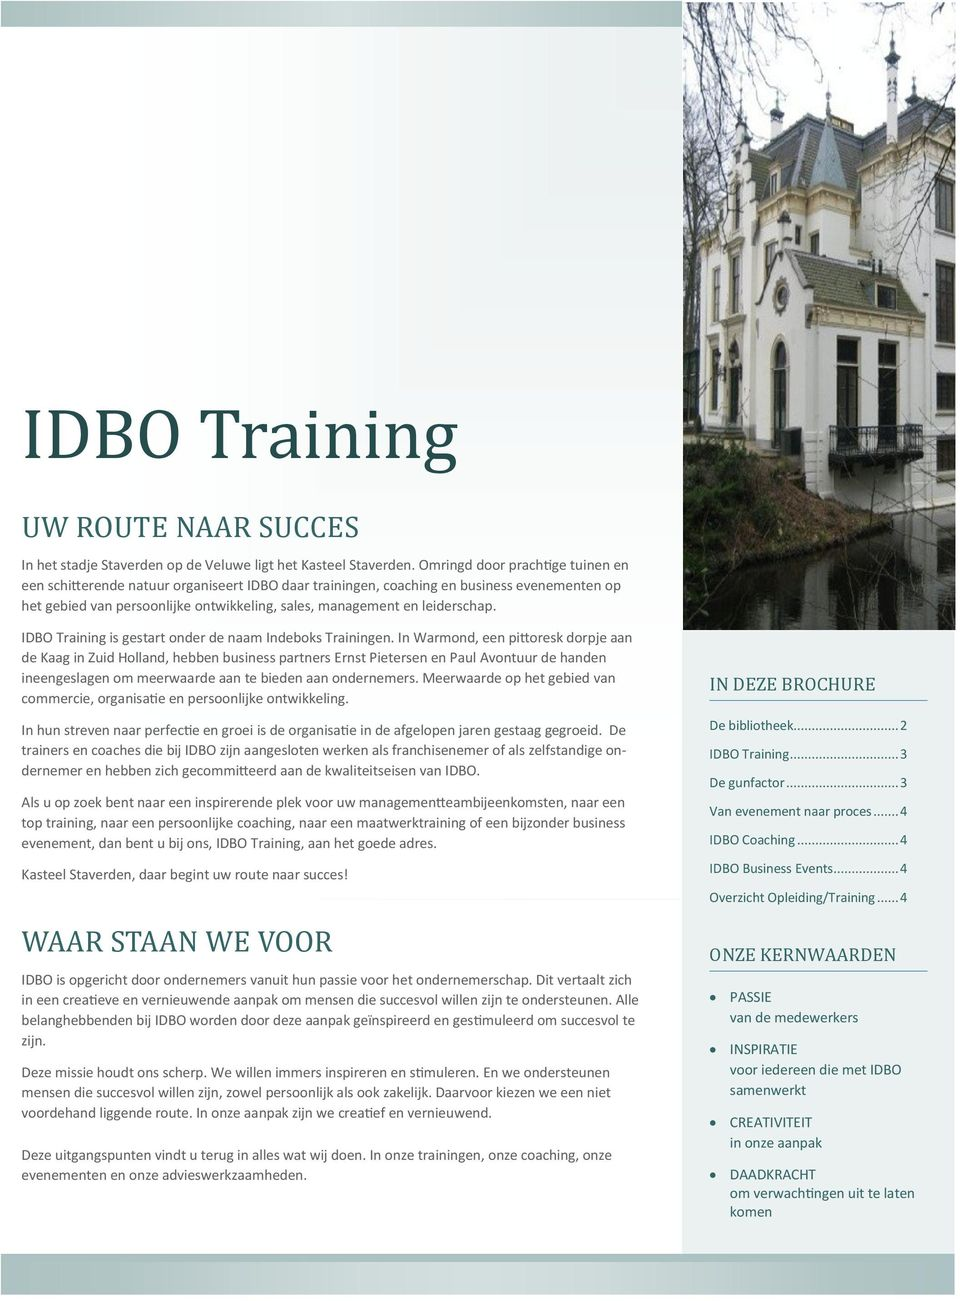 leiderschap. IDBO Training is gestart onder de naam Indeboks Trainingen.